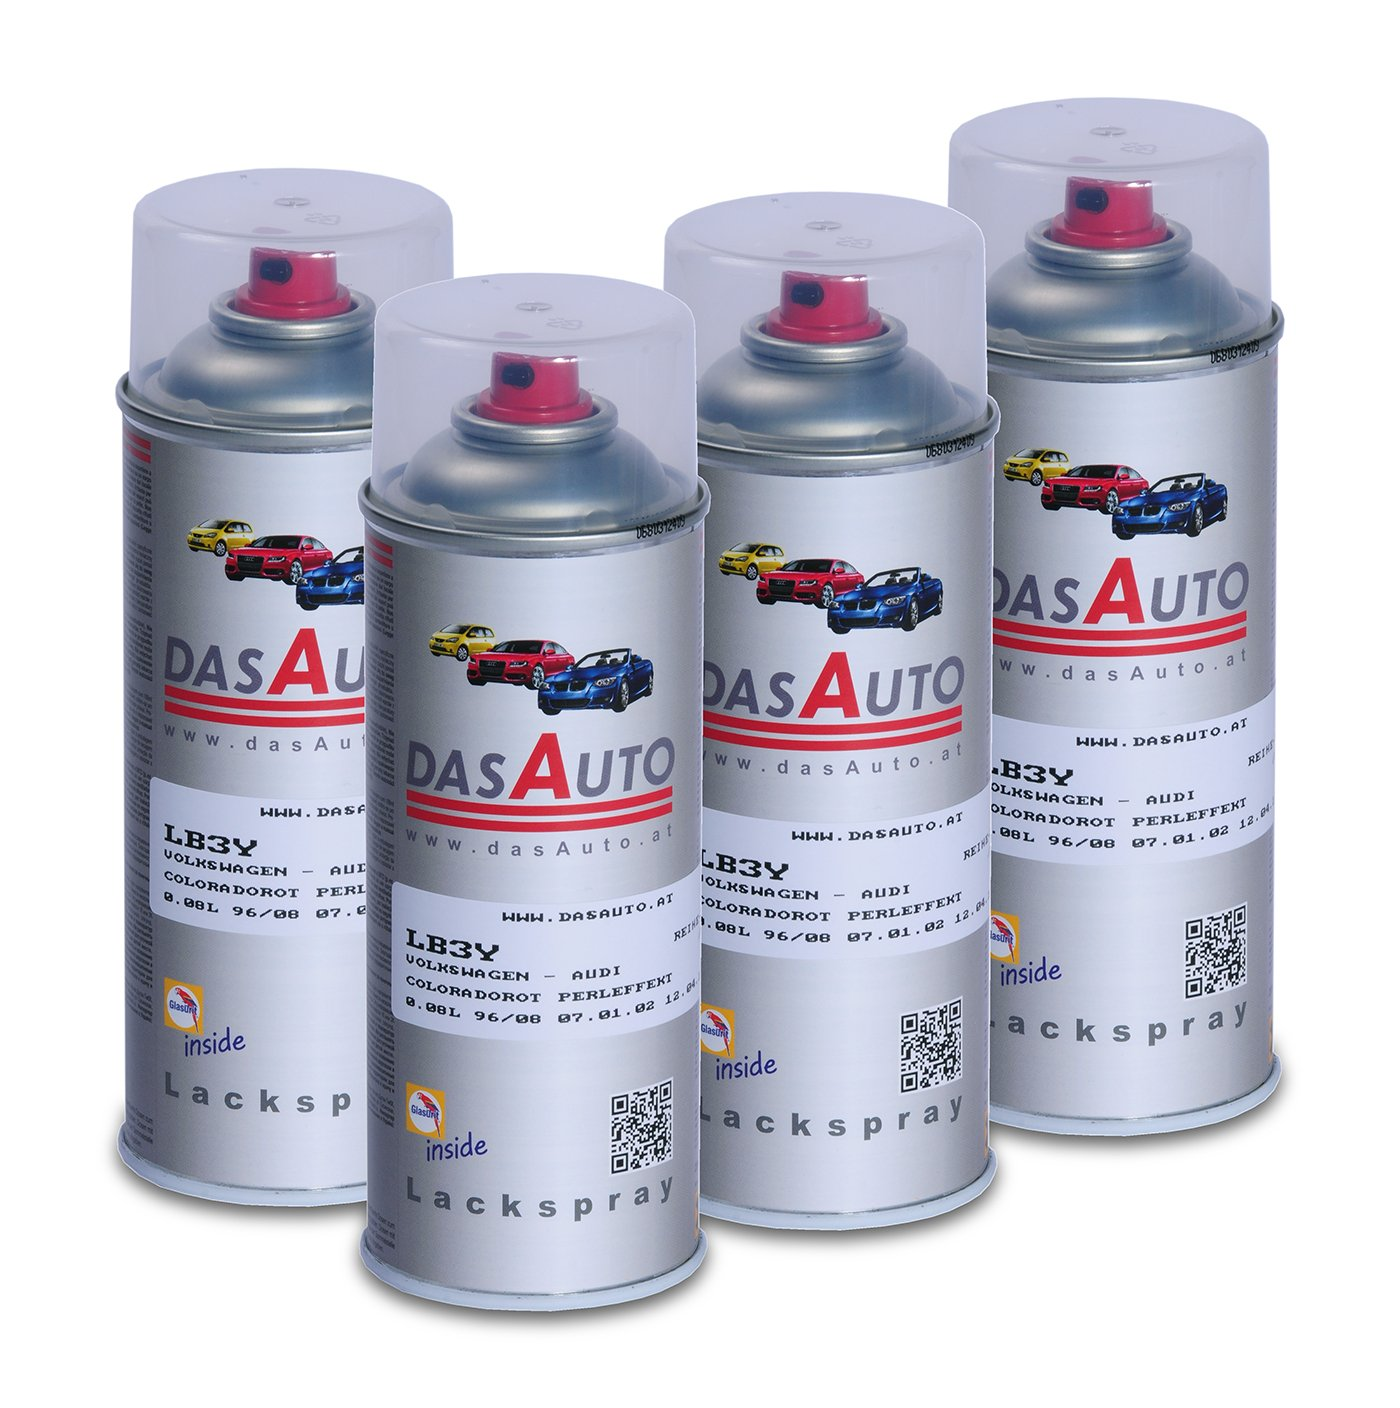 4 x dasauto Vernis Spray glasurit série 55 Inside 400 ml